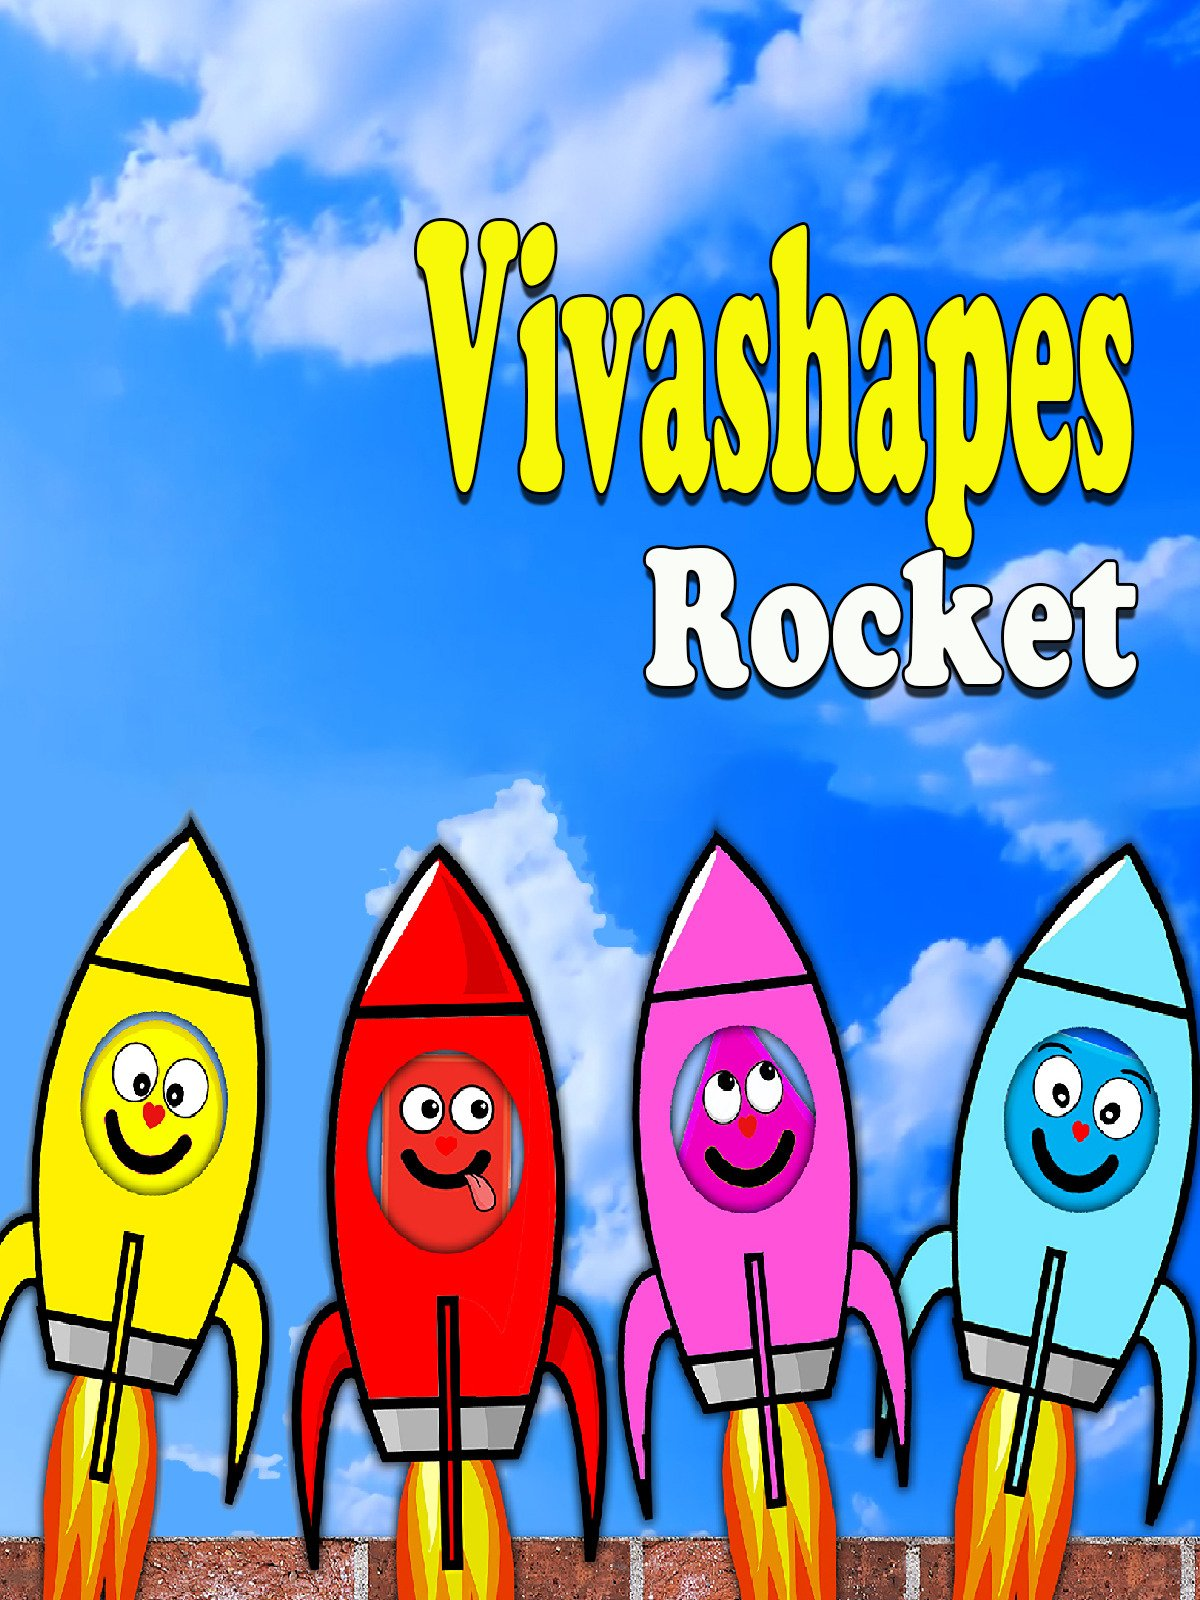 Vivashapes Rocket. on Amazon Prime Video UK